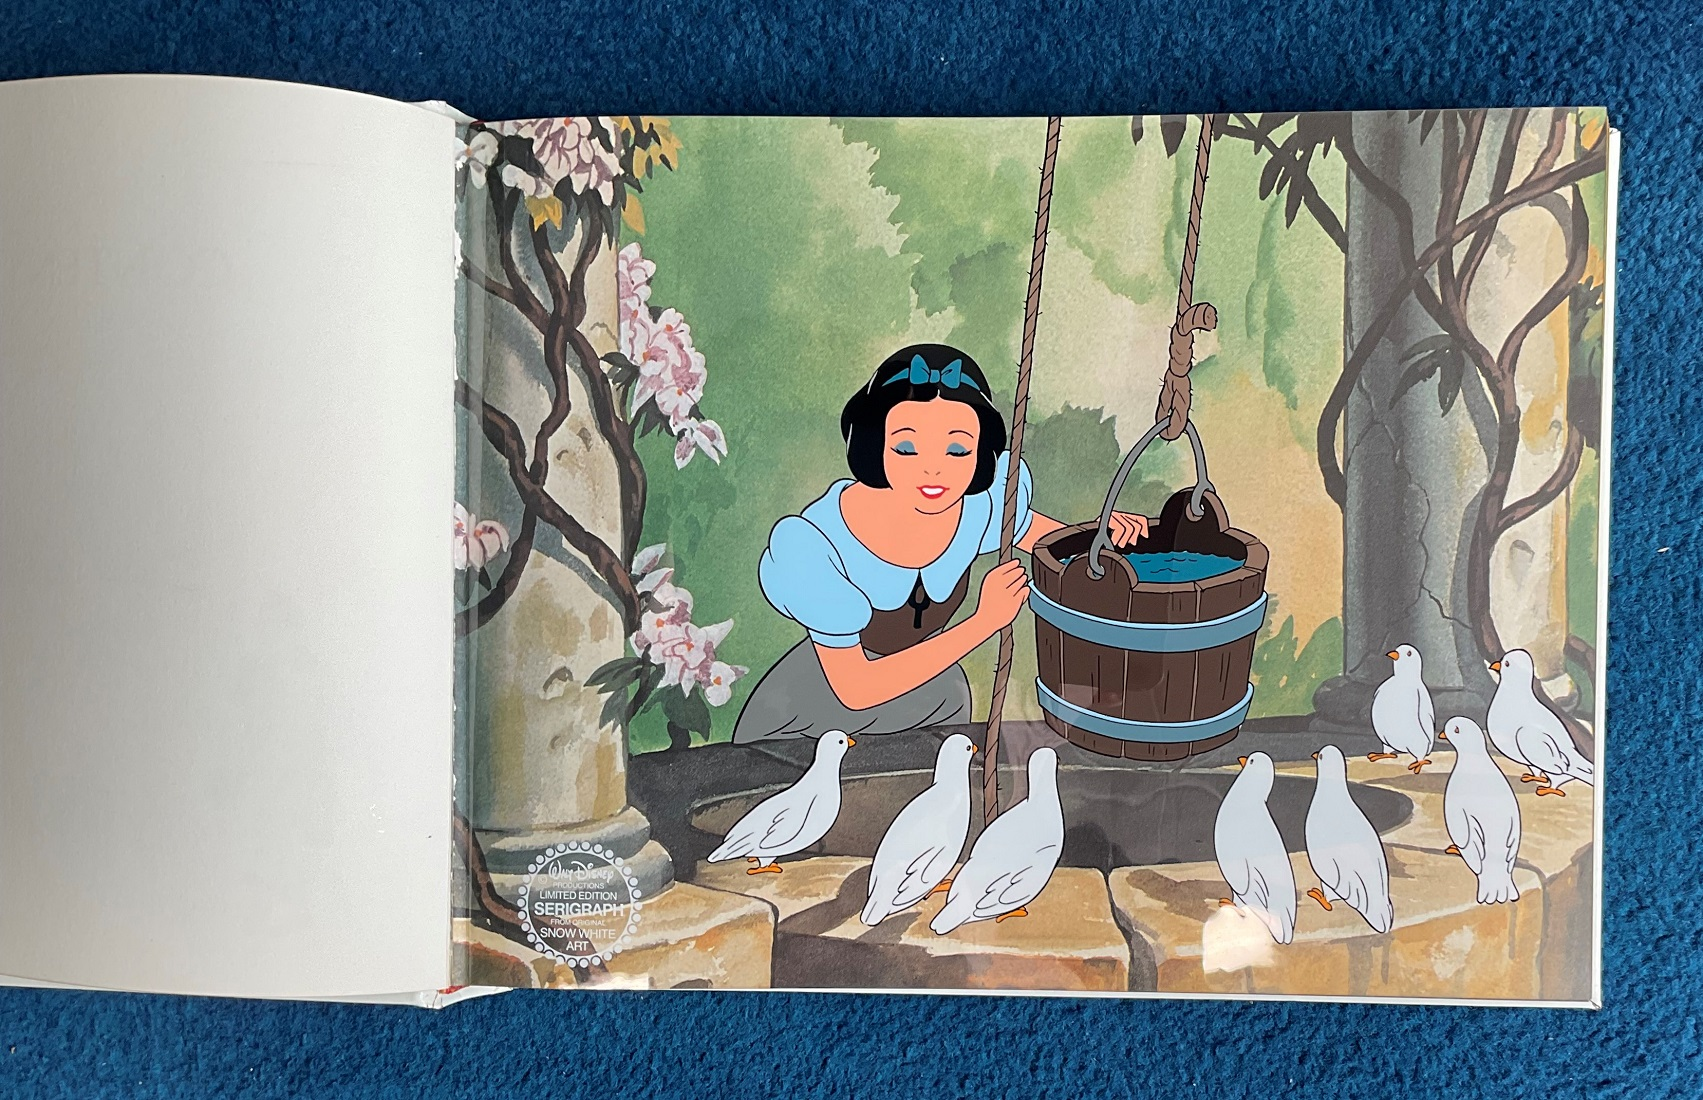 Hardback Book with slipcase Snow White and the Seven Dwarfs by Walt Disney Productions Limited - Image 4 of 4